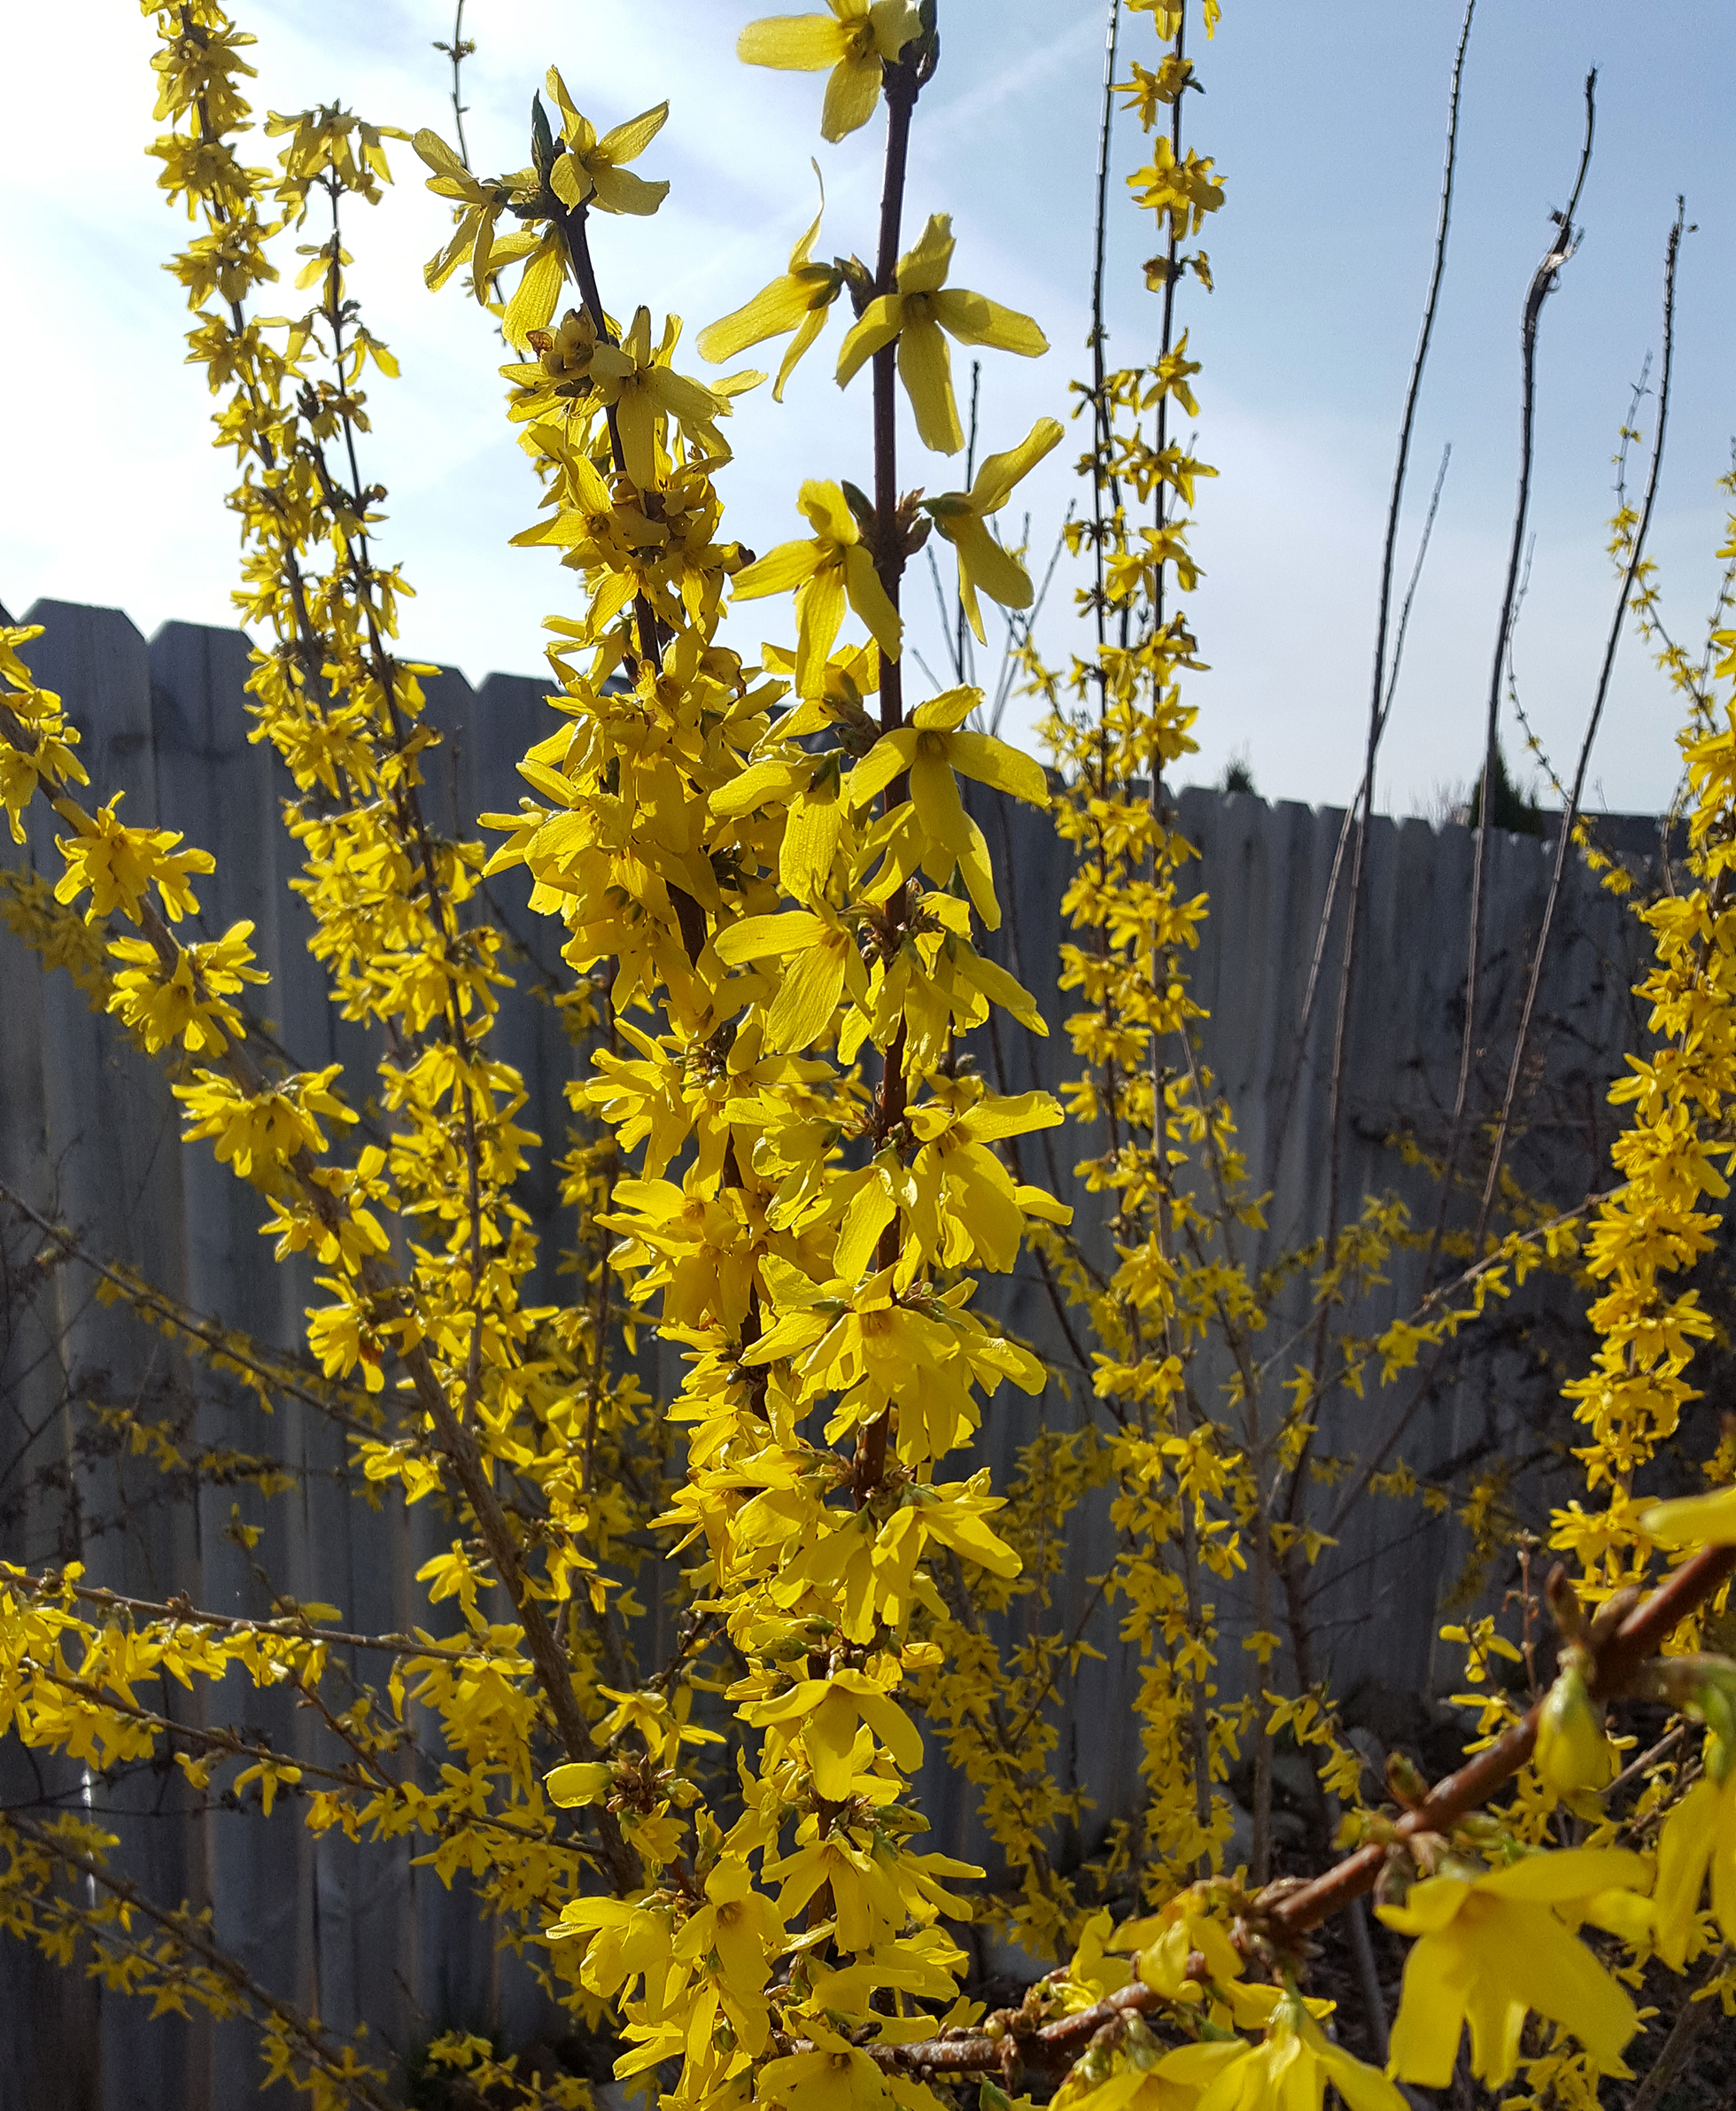 Yellow forsythia against a wooden fence and blue sky